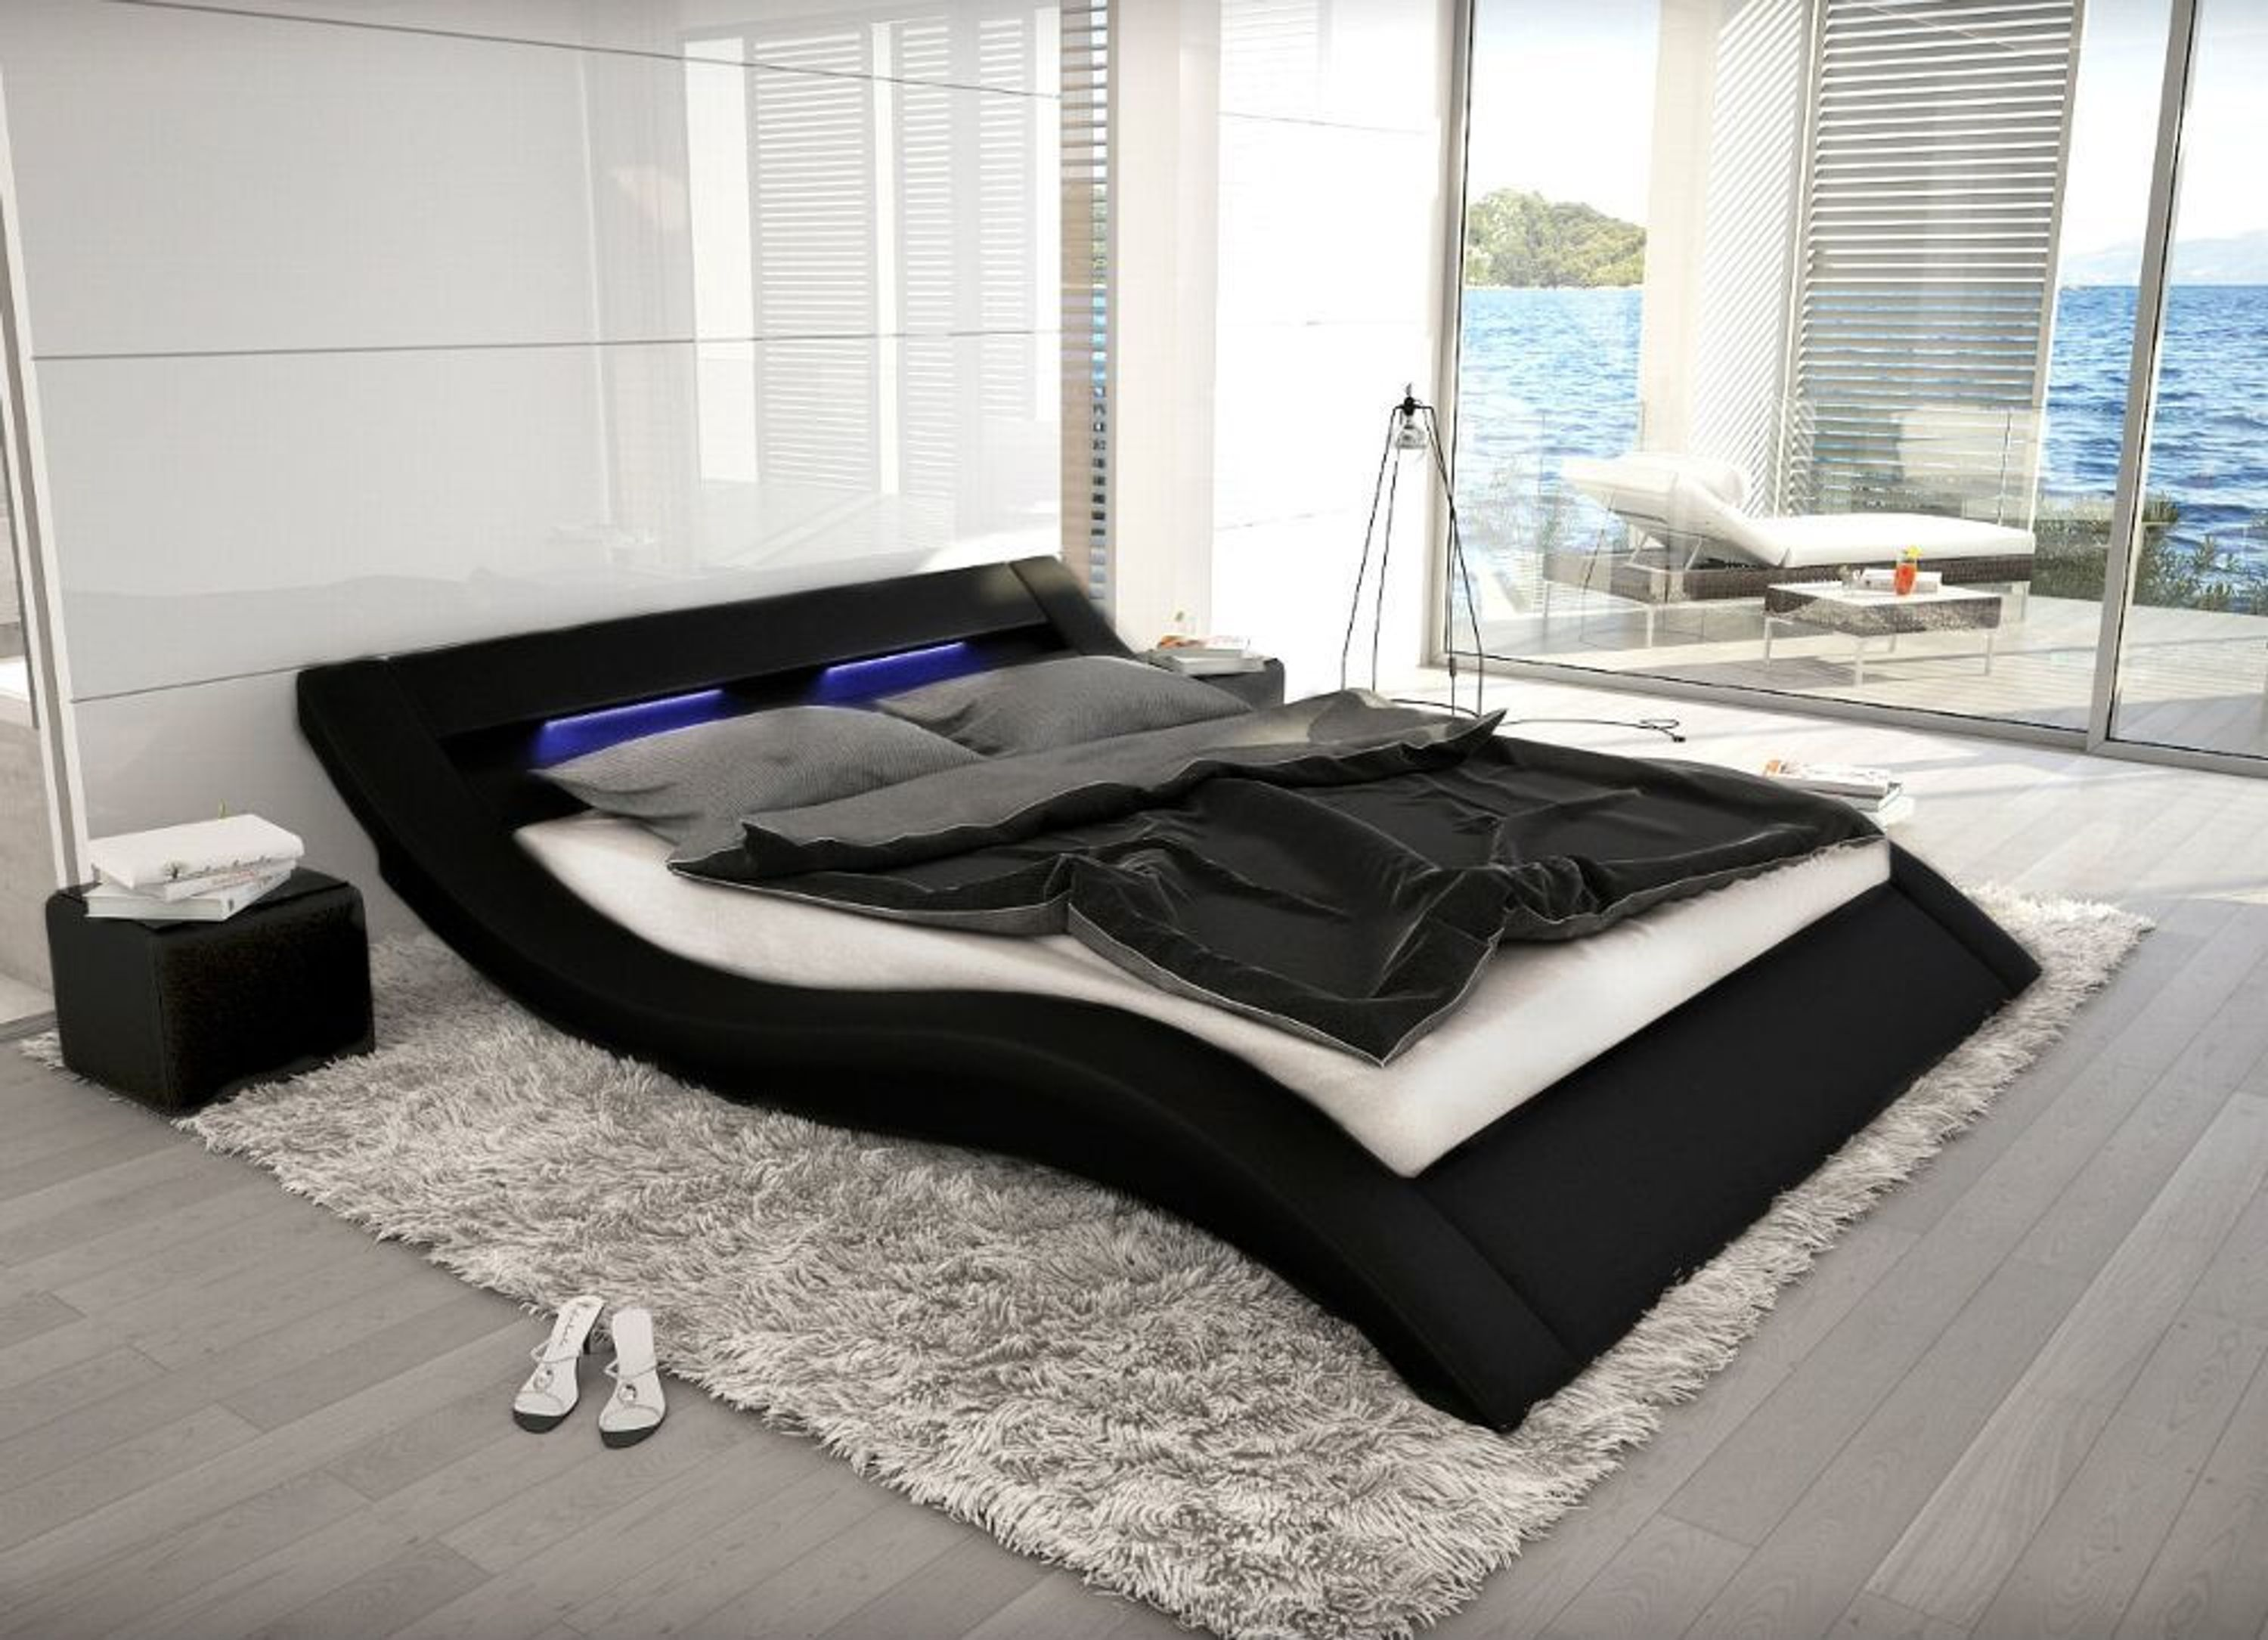 designer leder polsterbett lederbett wei oder schwarz modernes luxus bett gewellt kaufen bei. Black Bedroom Furniture Sets. Home Design Ideas